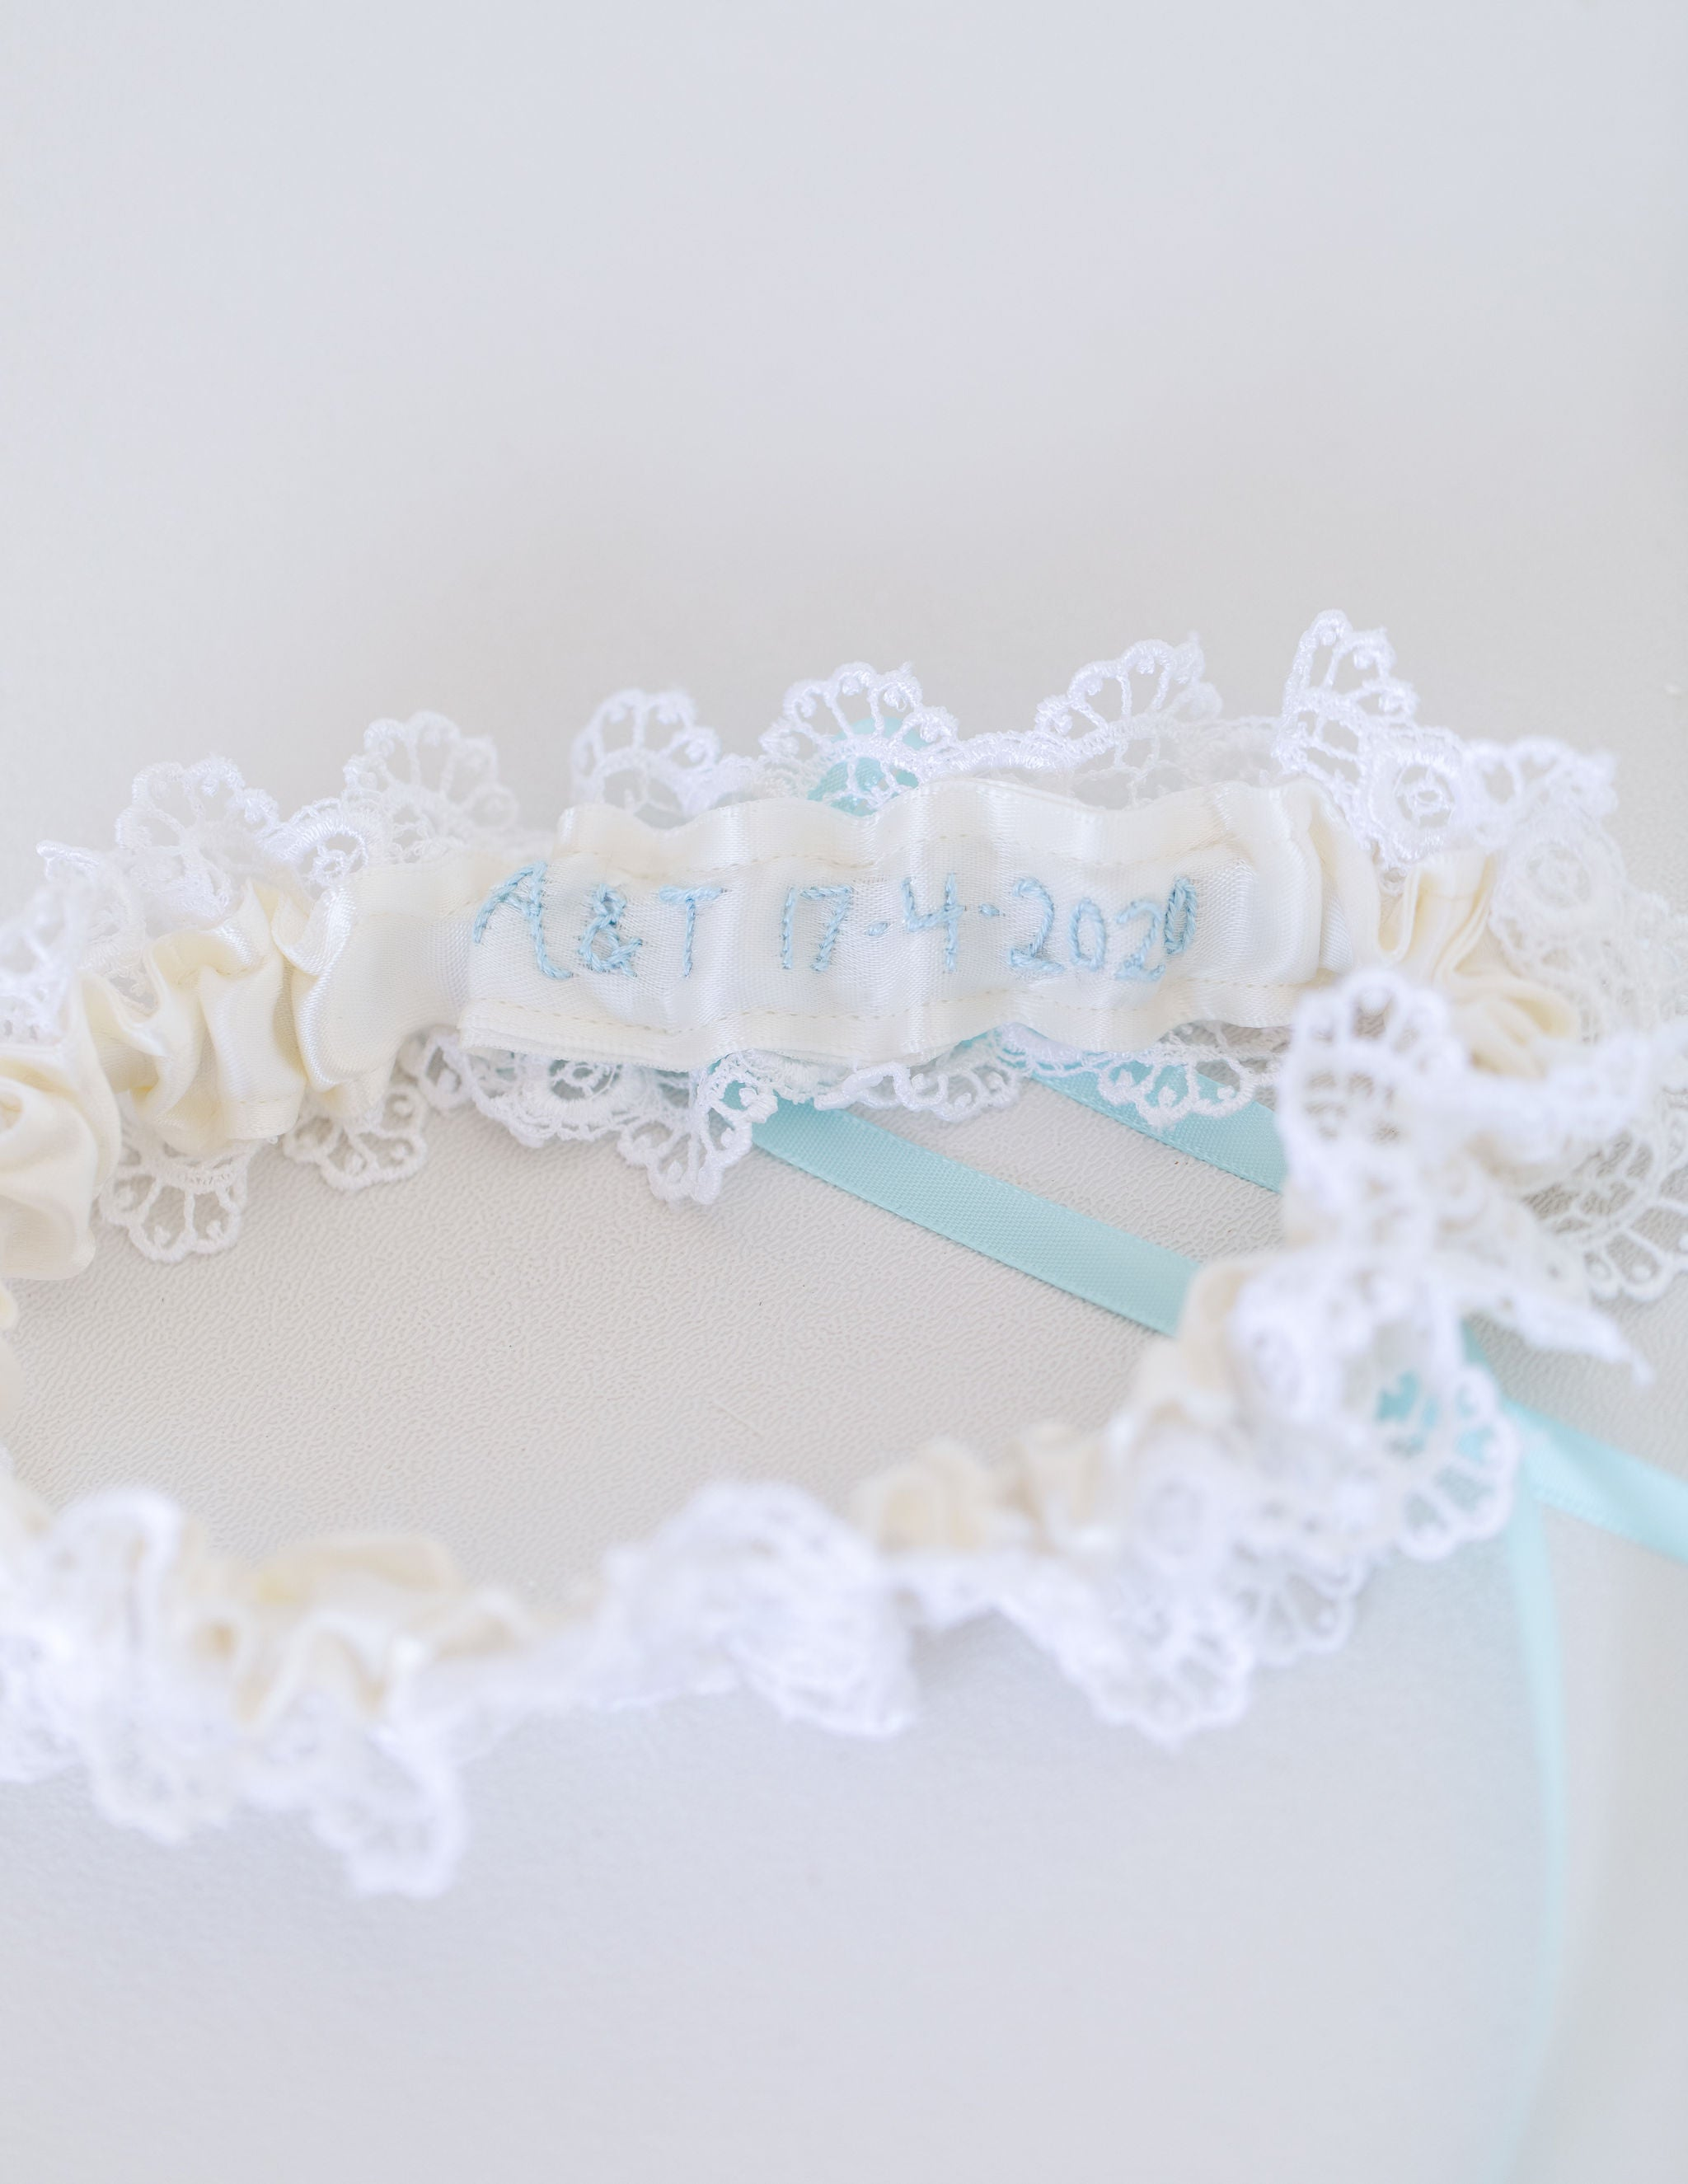 custom wedding garter heirloom handmade with lace and something blue by The Garter Girl